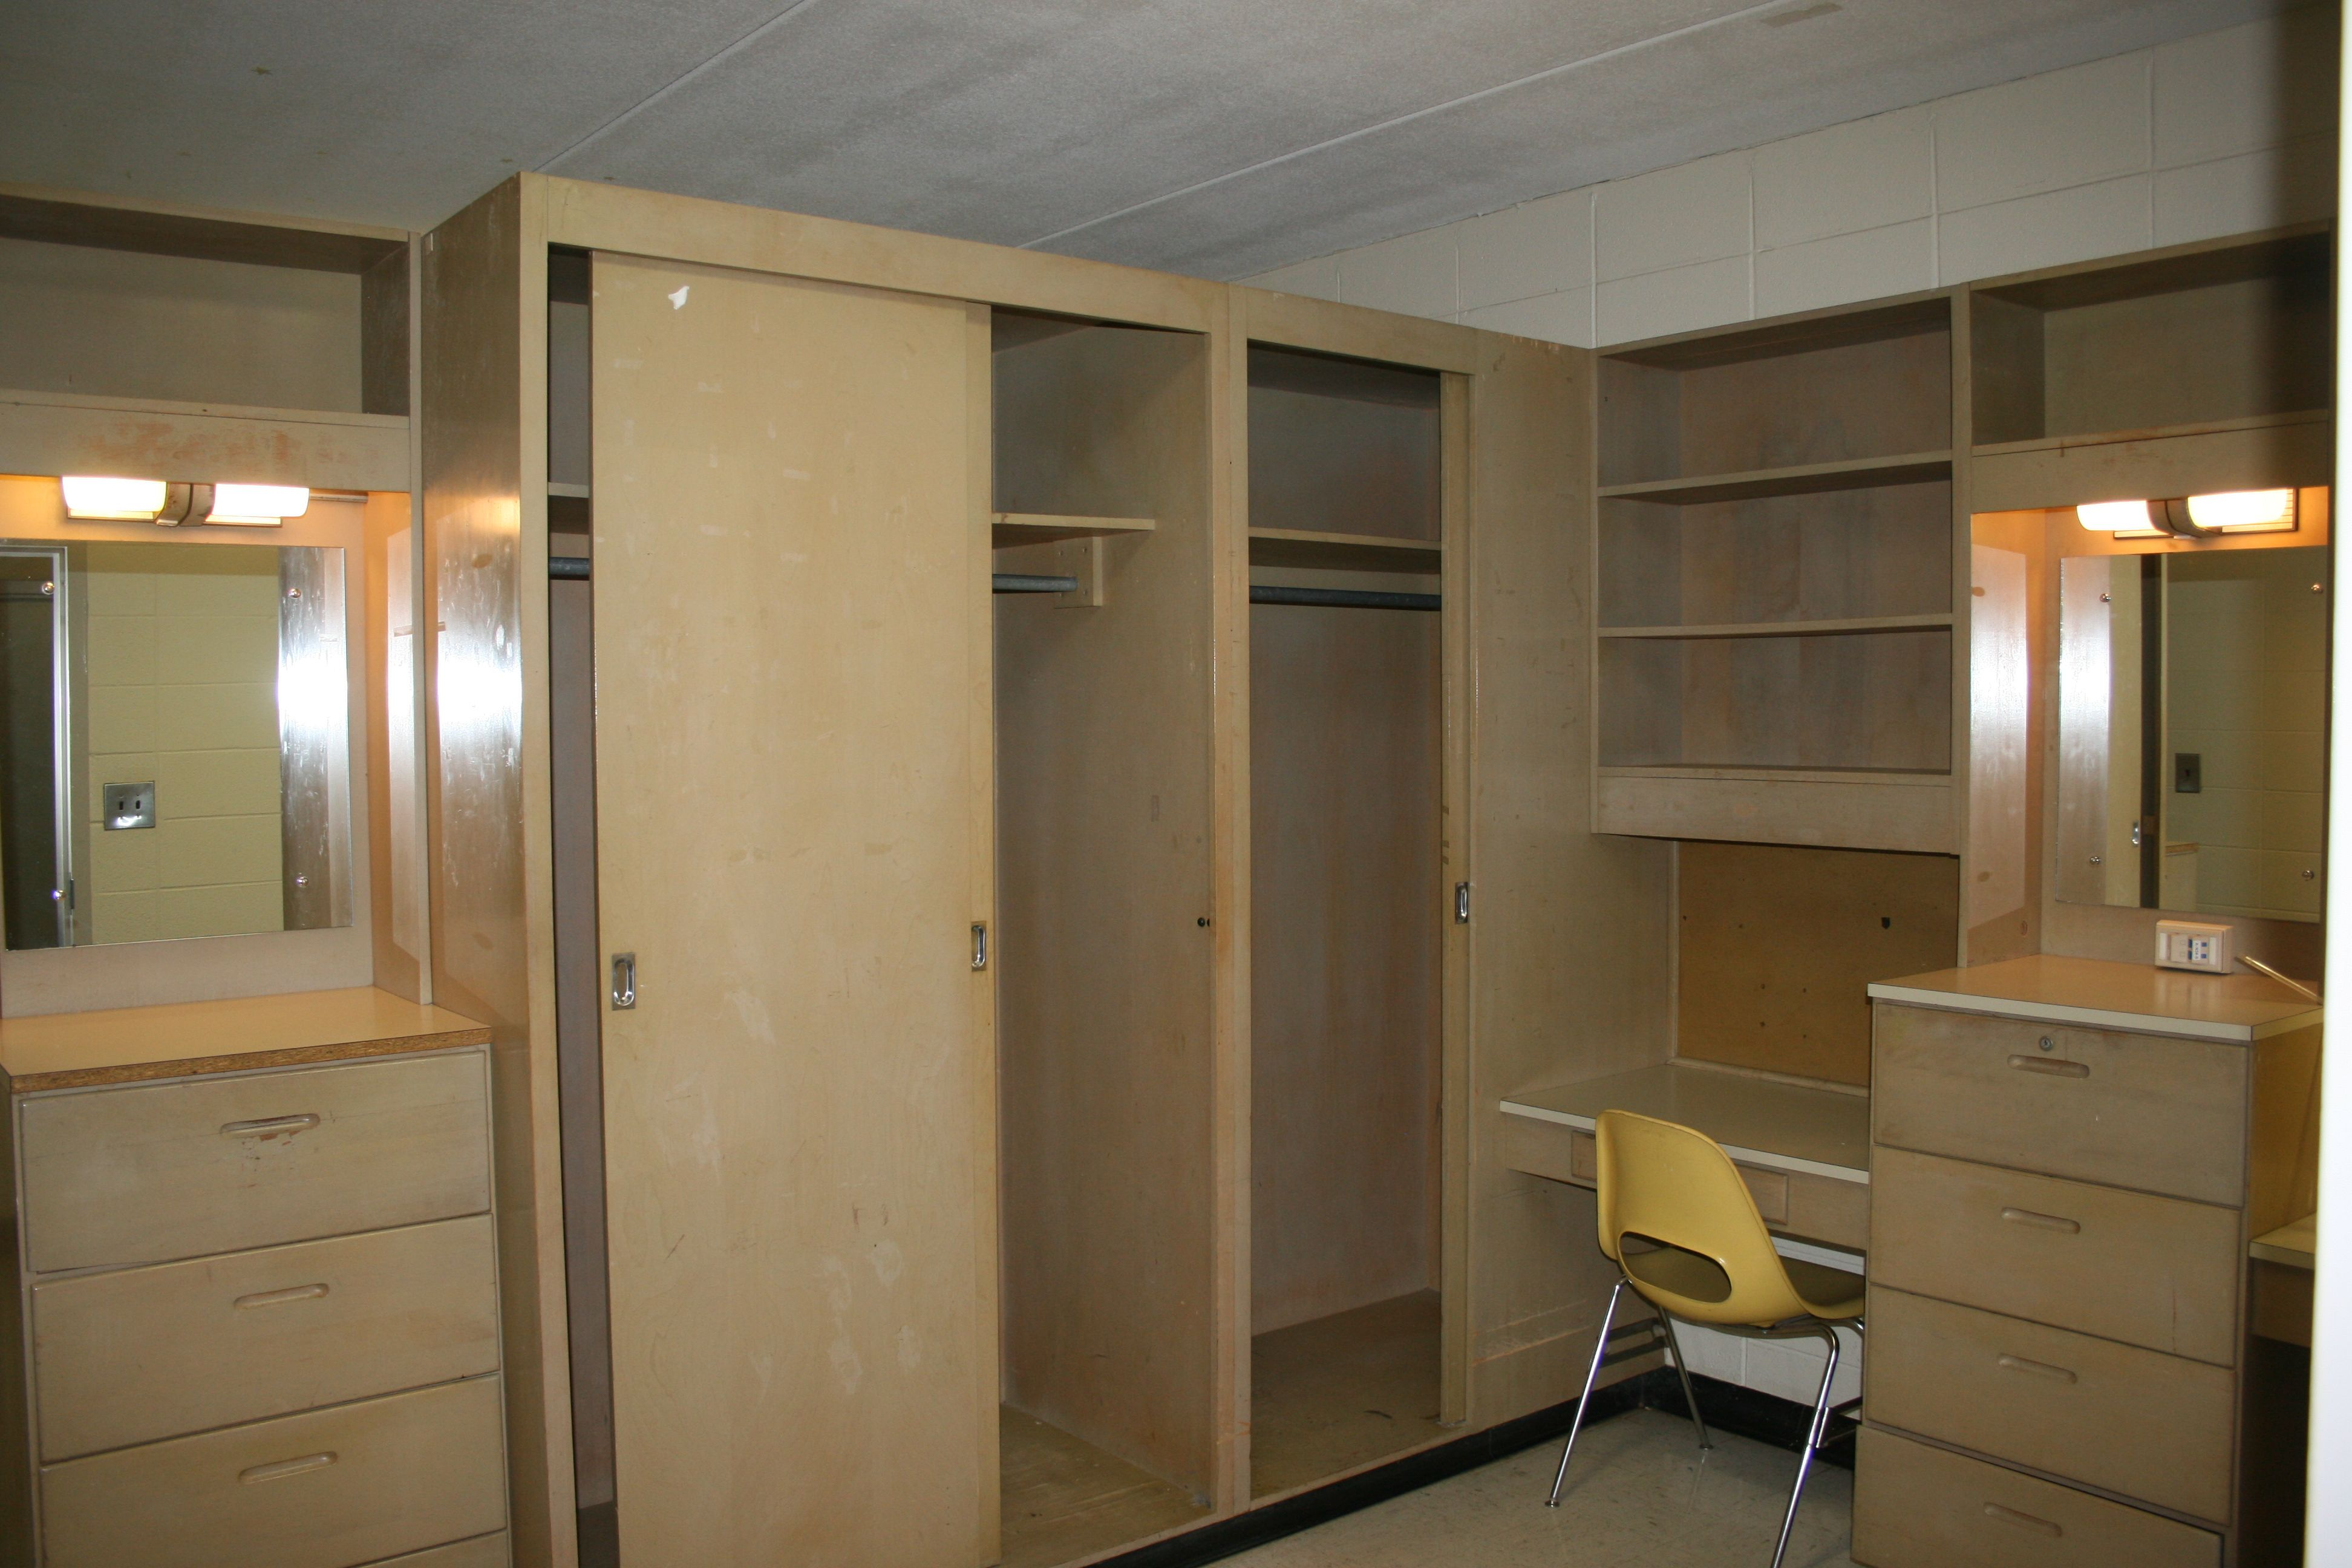 Study Area, Closets Etc At The Front Of The Dorm Room